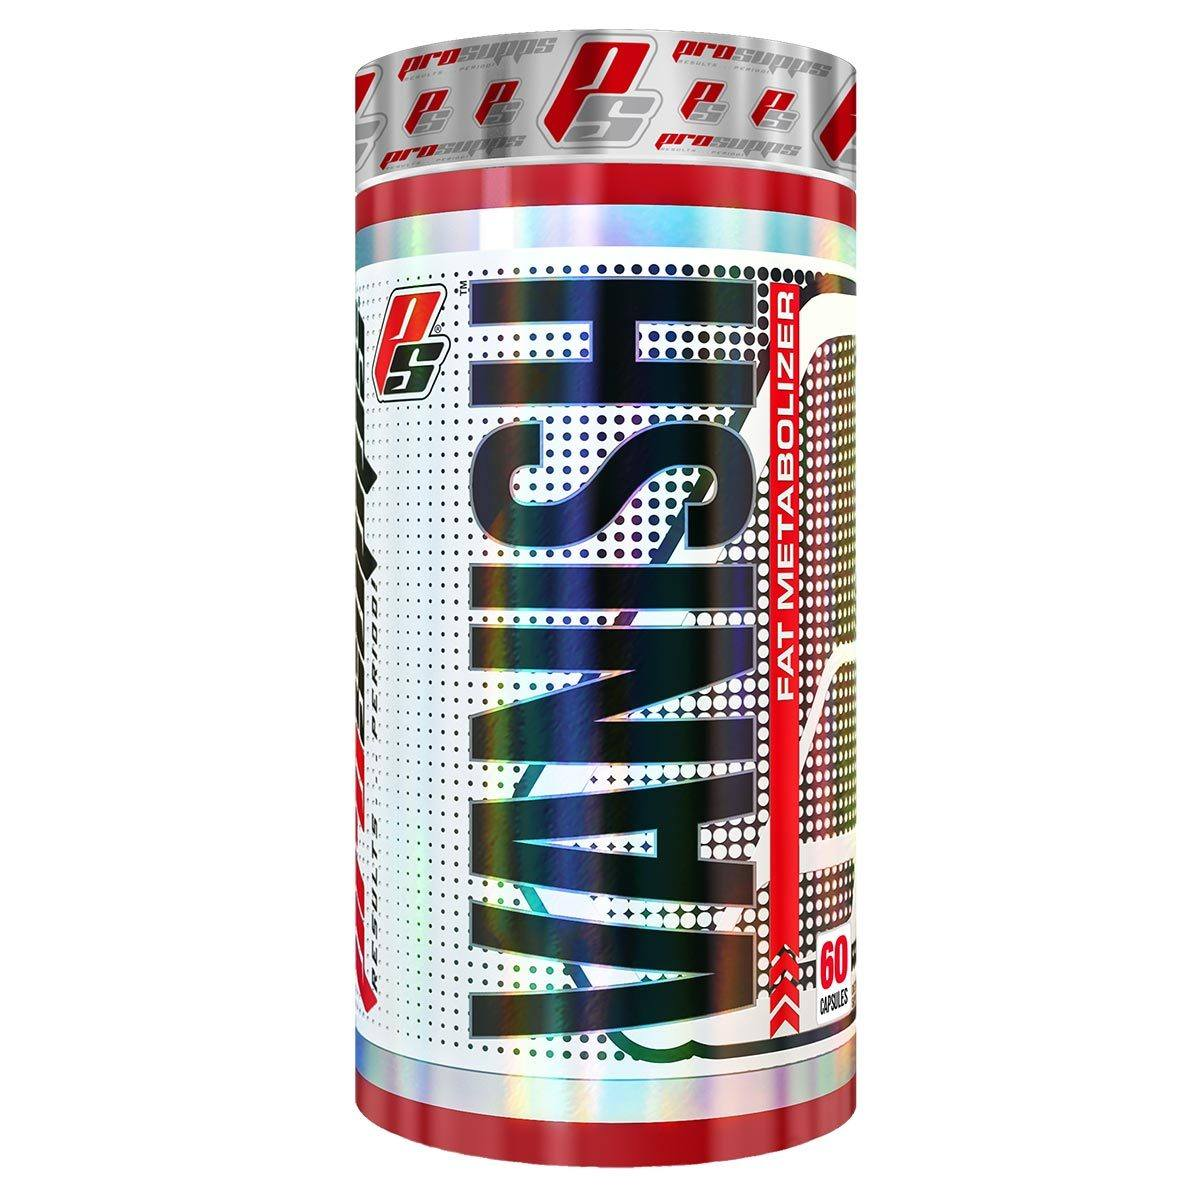 Pro Supps Vanish 60 Caps Diet/Energy Pro Supps  (1058842050603)